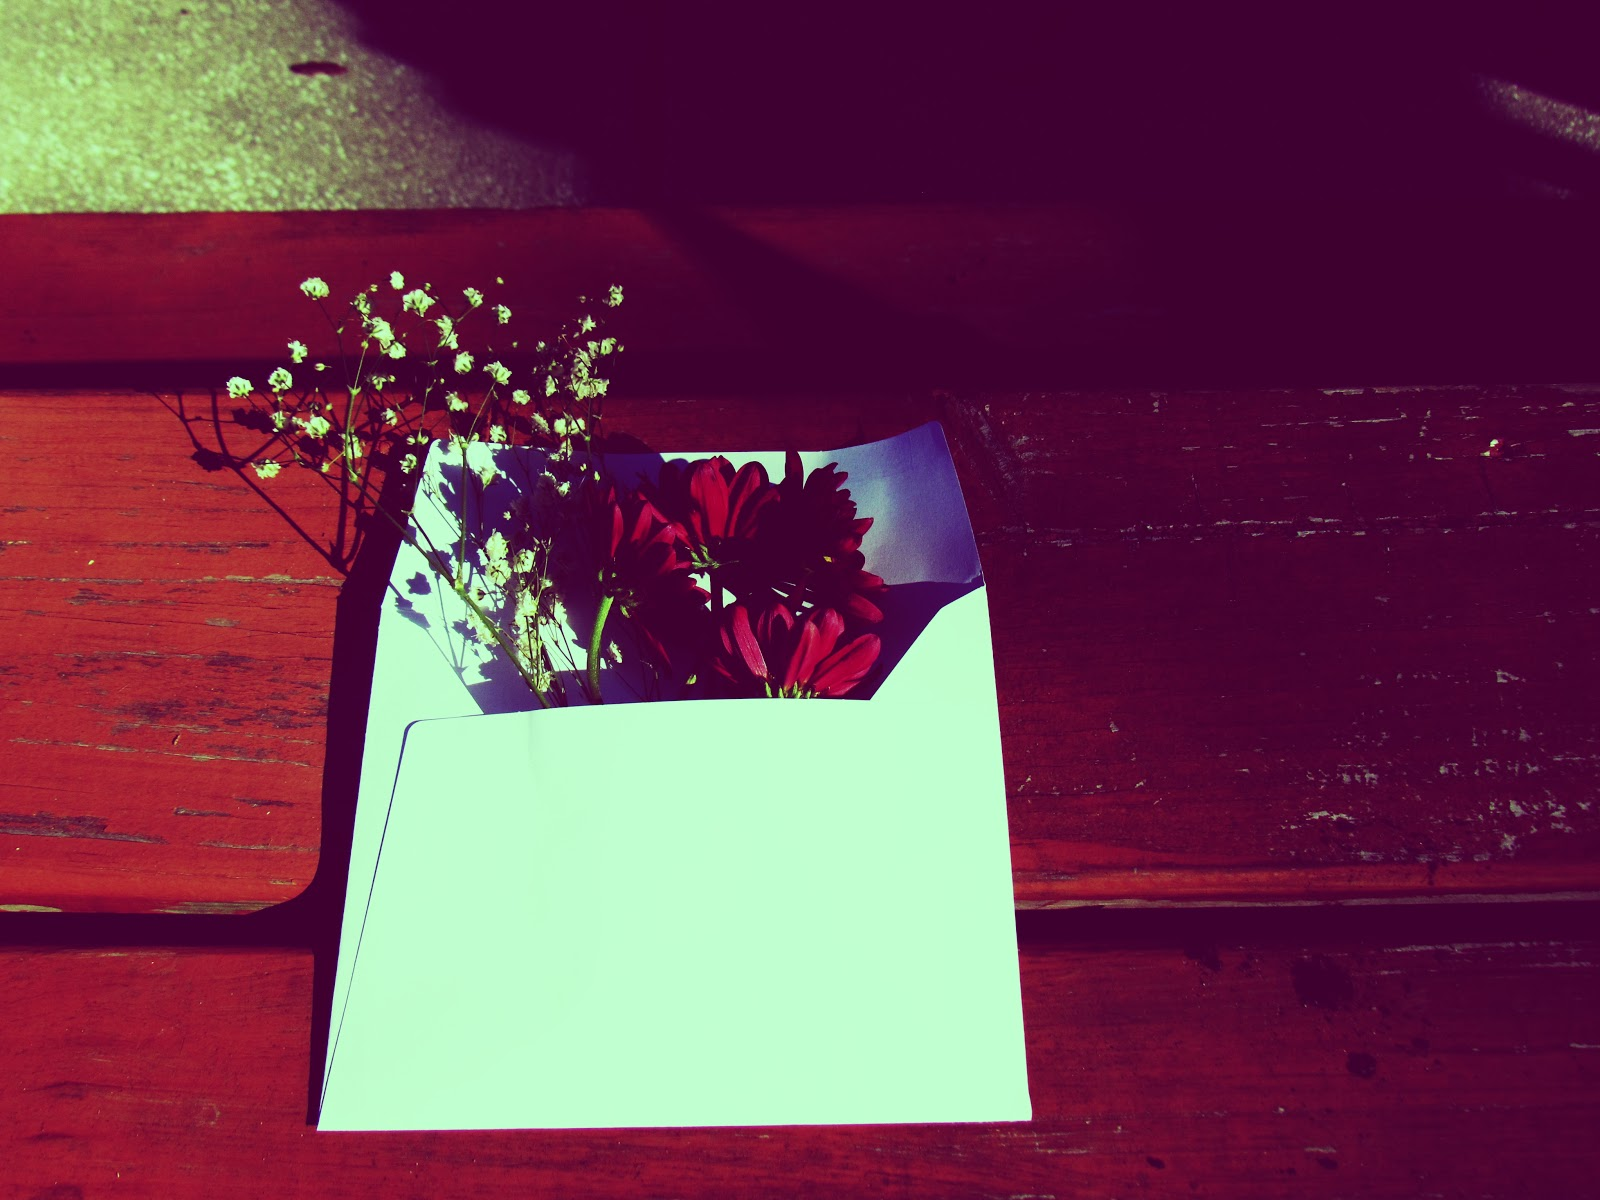 A plain white envelope filled with red carnation flowers for the fall weather and baby's breath flowers on a redwood porch in golden nature